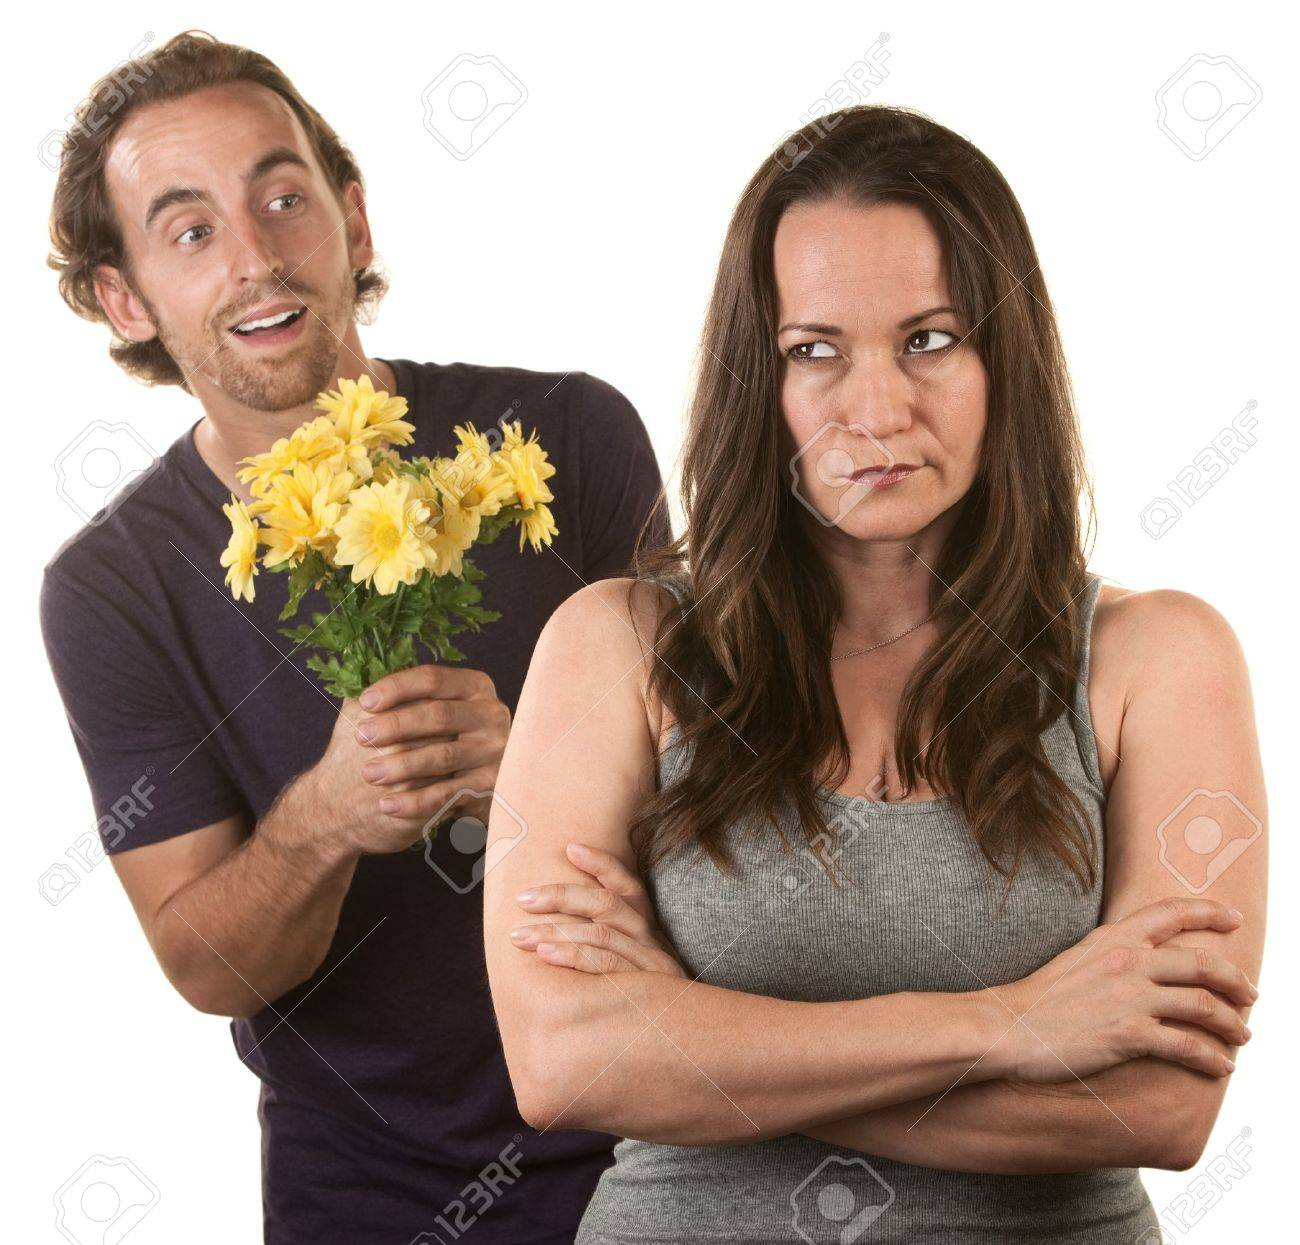 Skeptical female with smiling young man holding flowers Stock Photo - 16300088